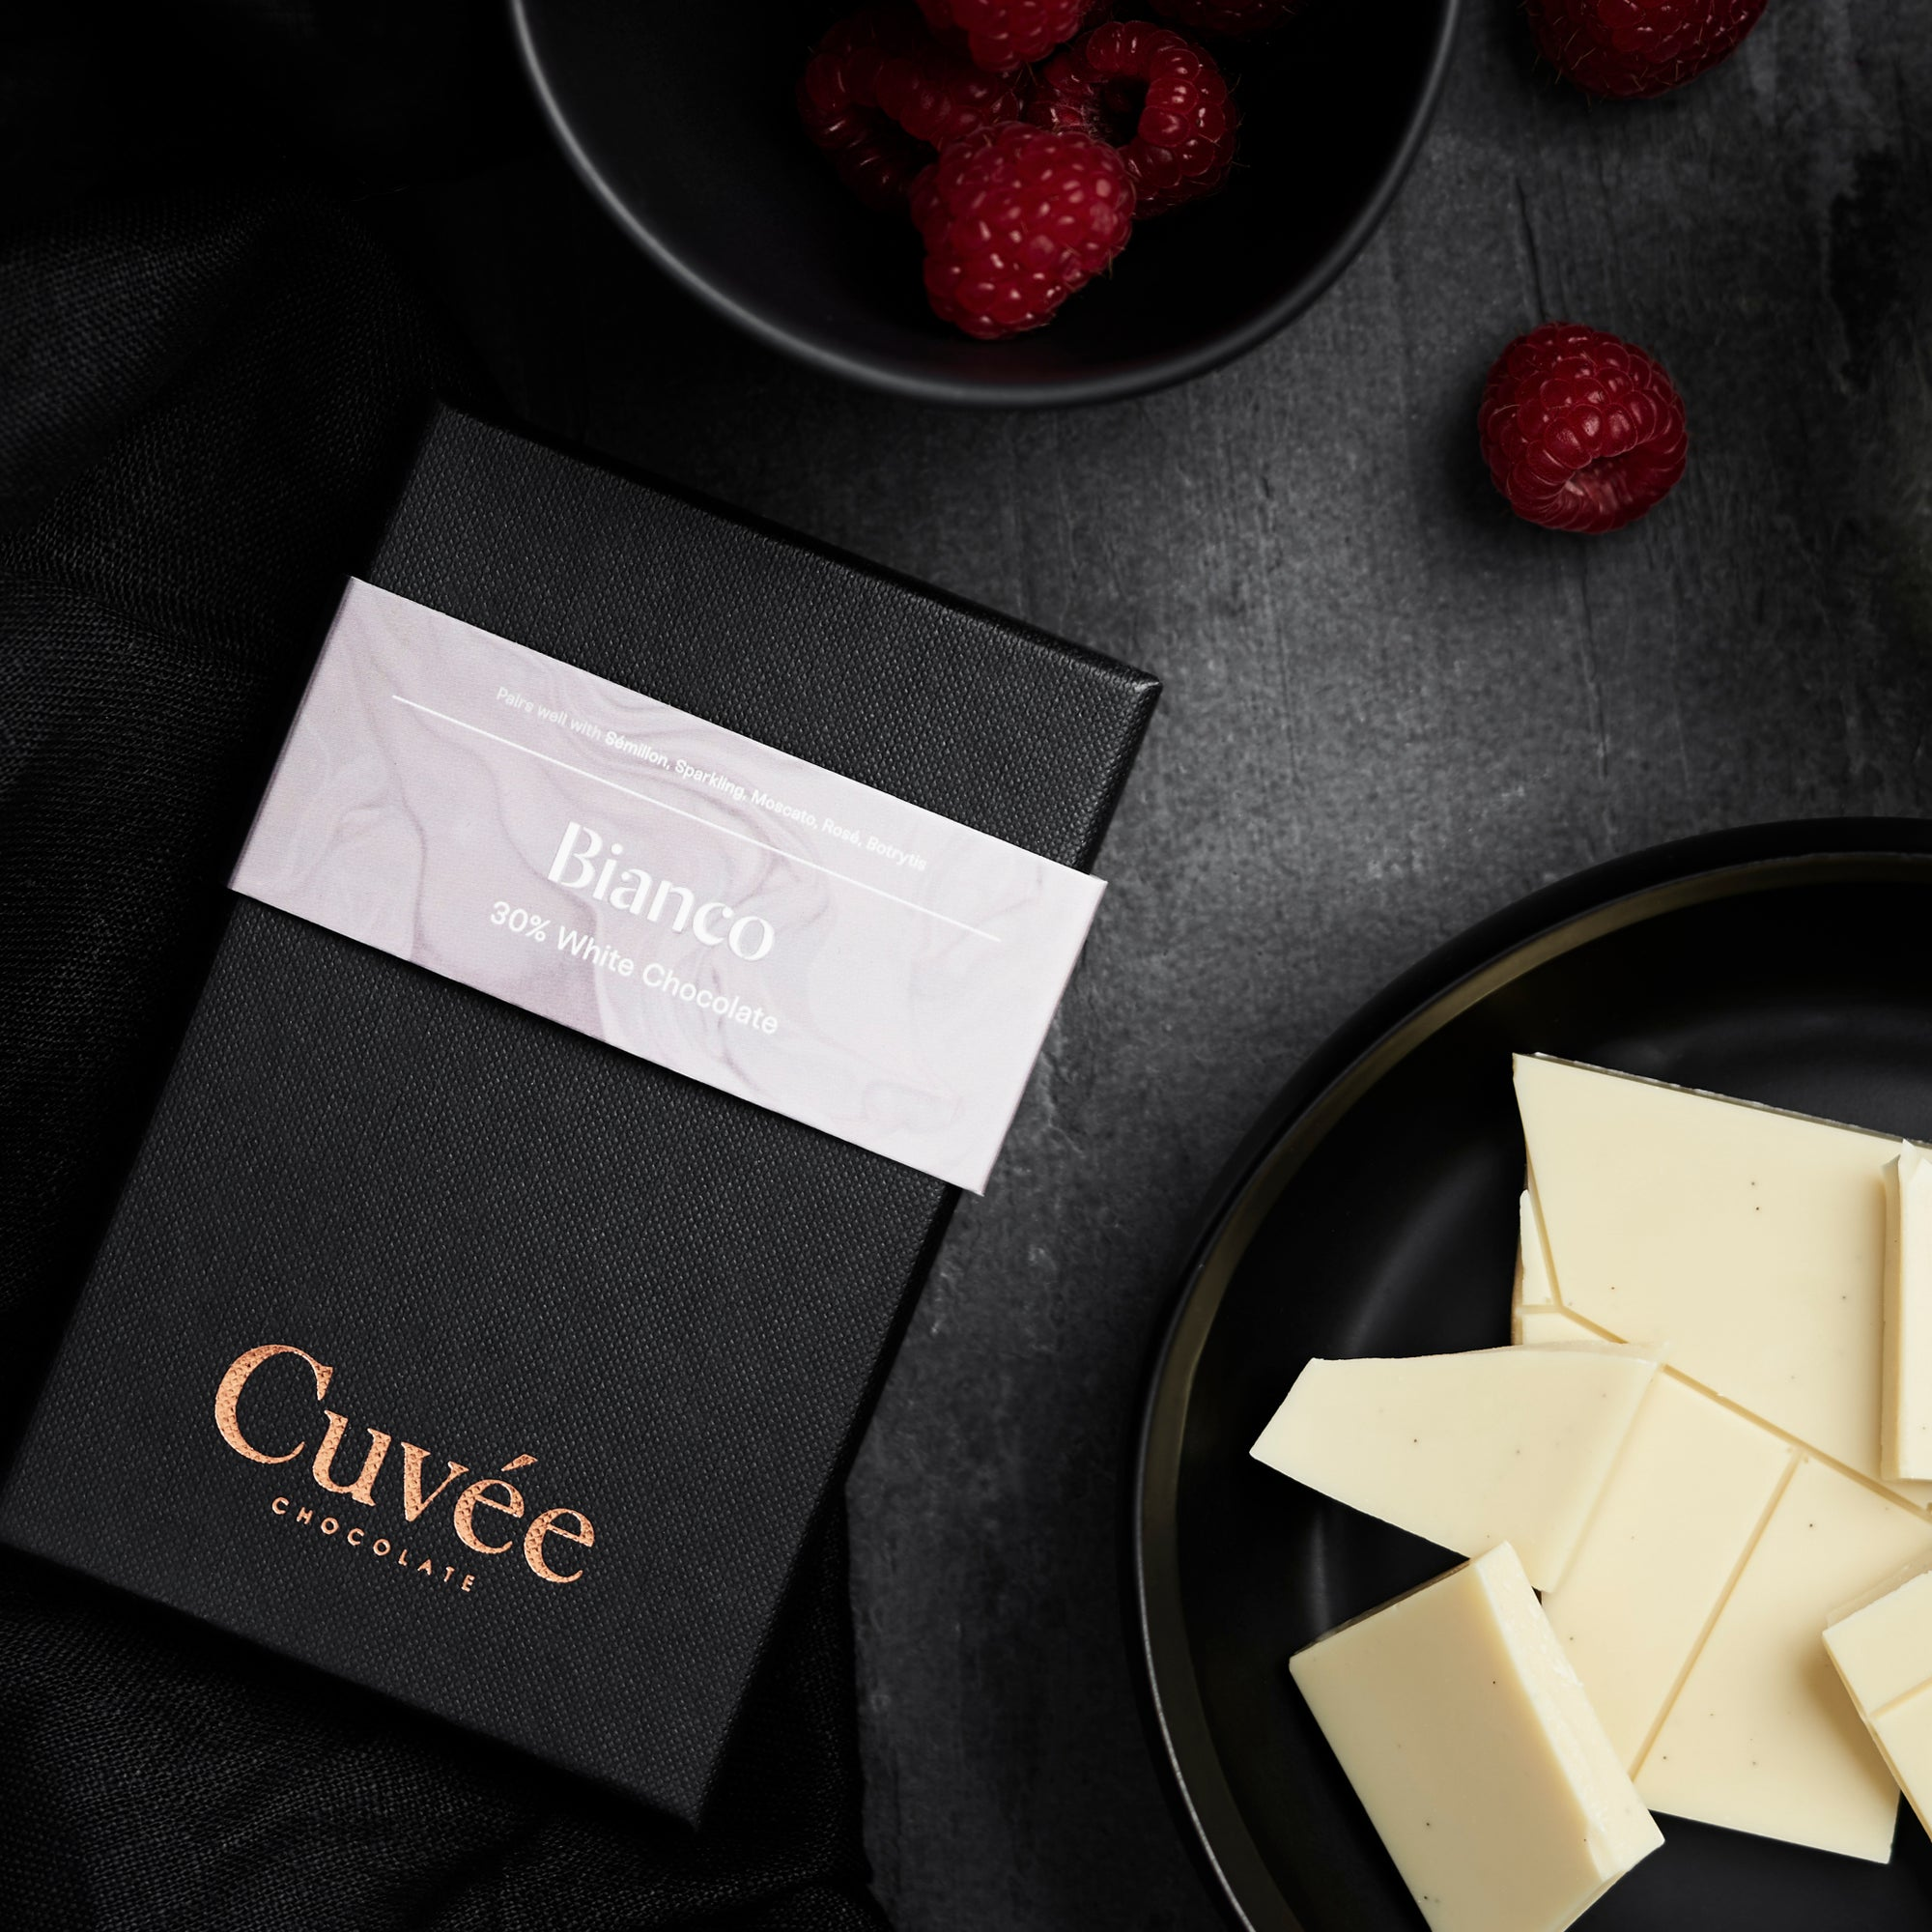 Cuvée Bianco | 30% White Chocolate - 70g